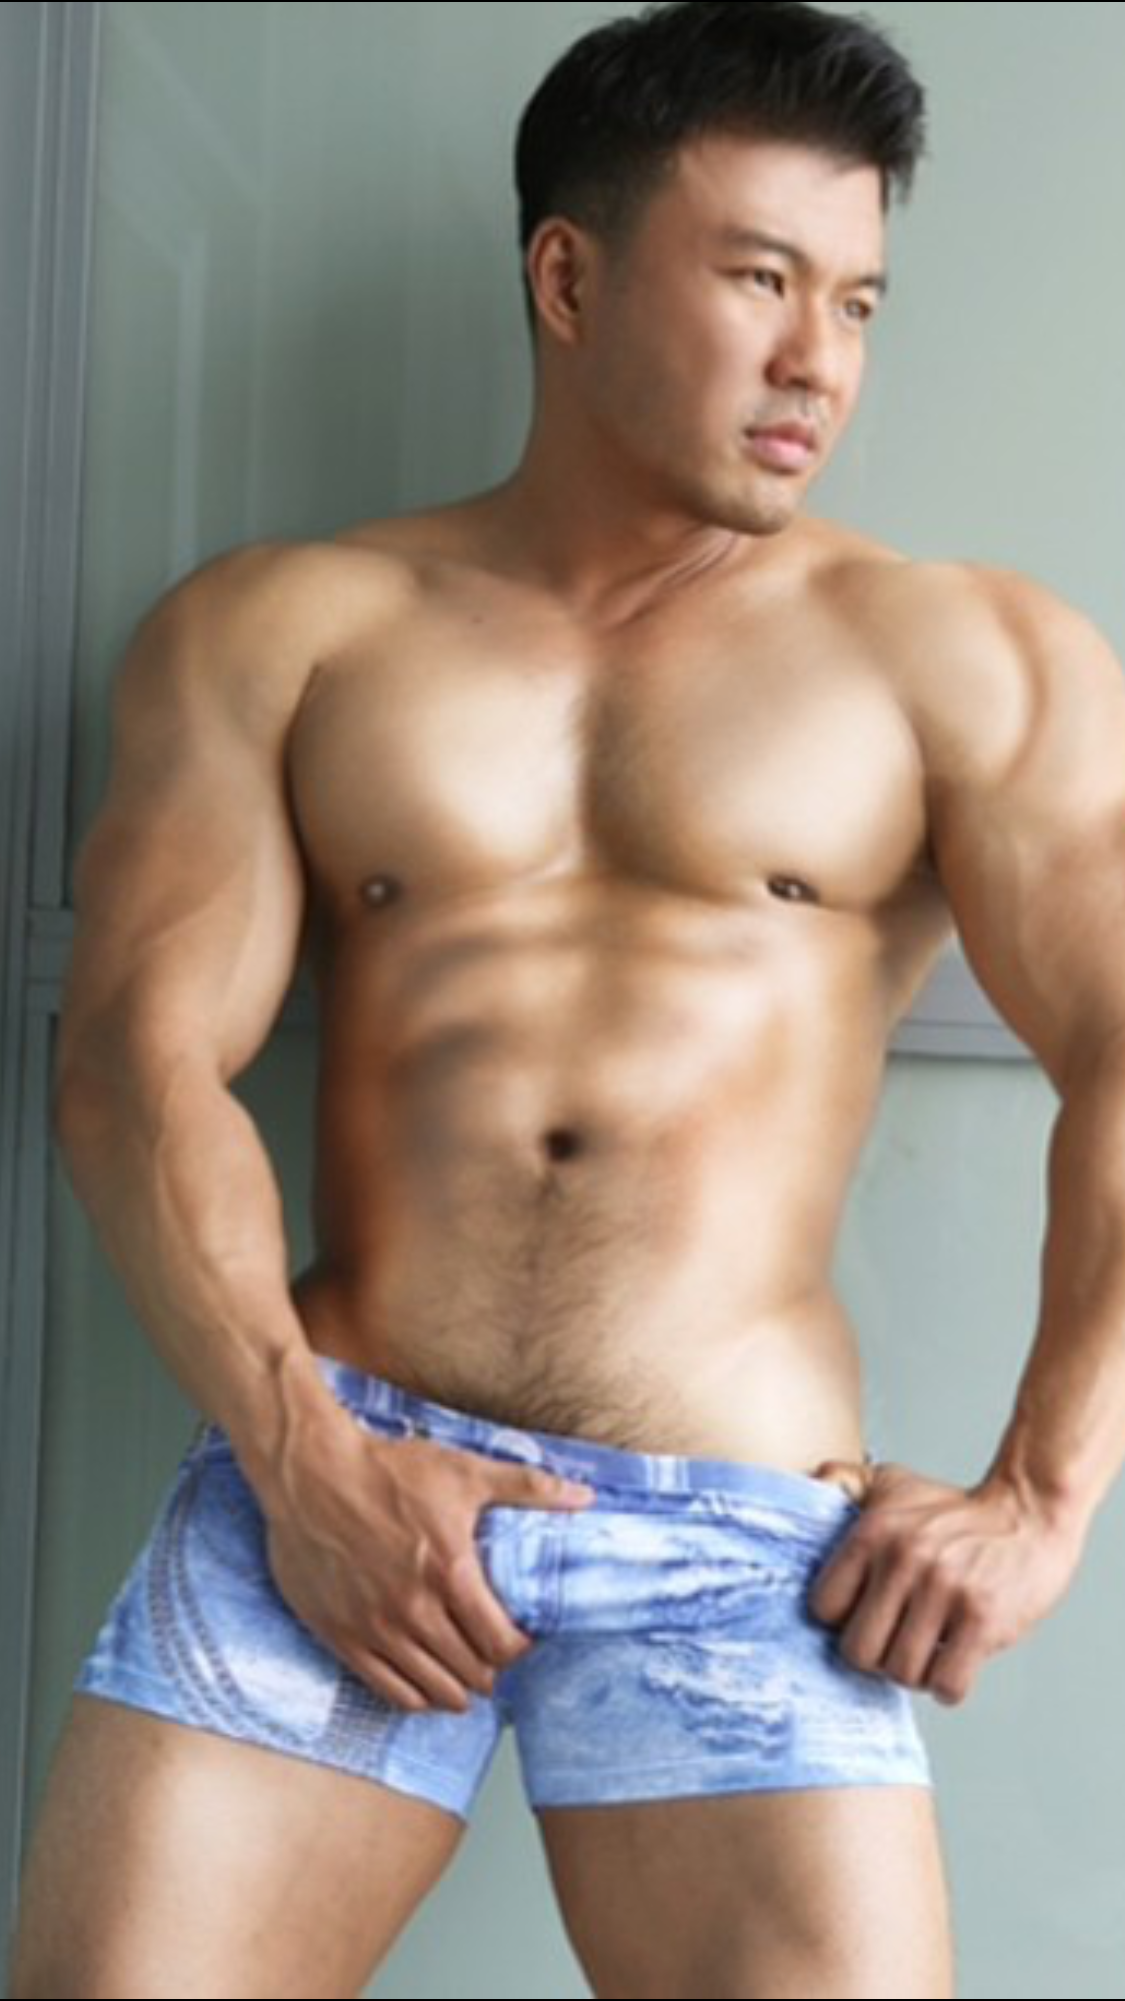 Asian man photo gallery